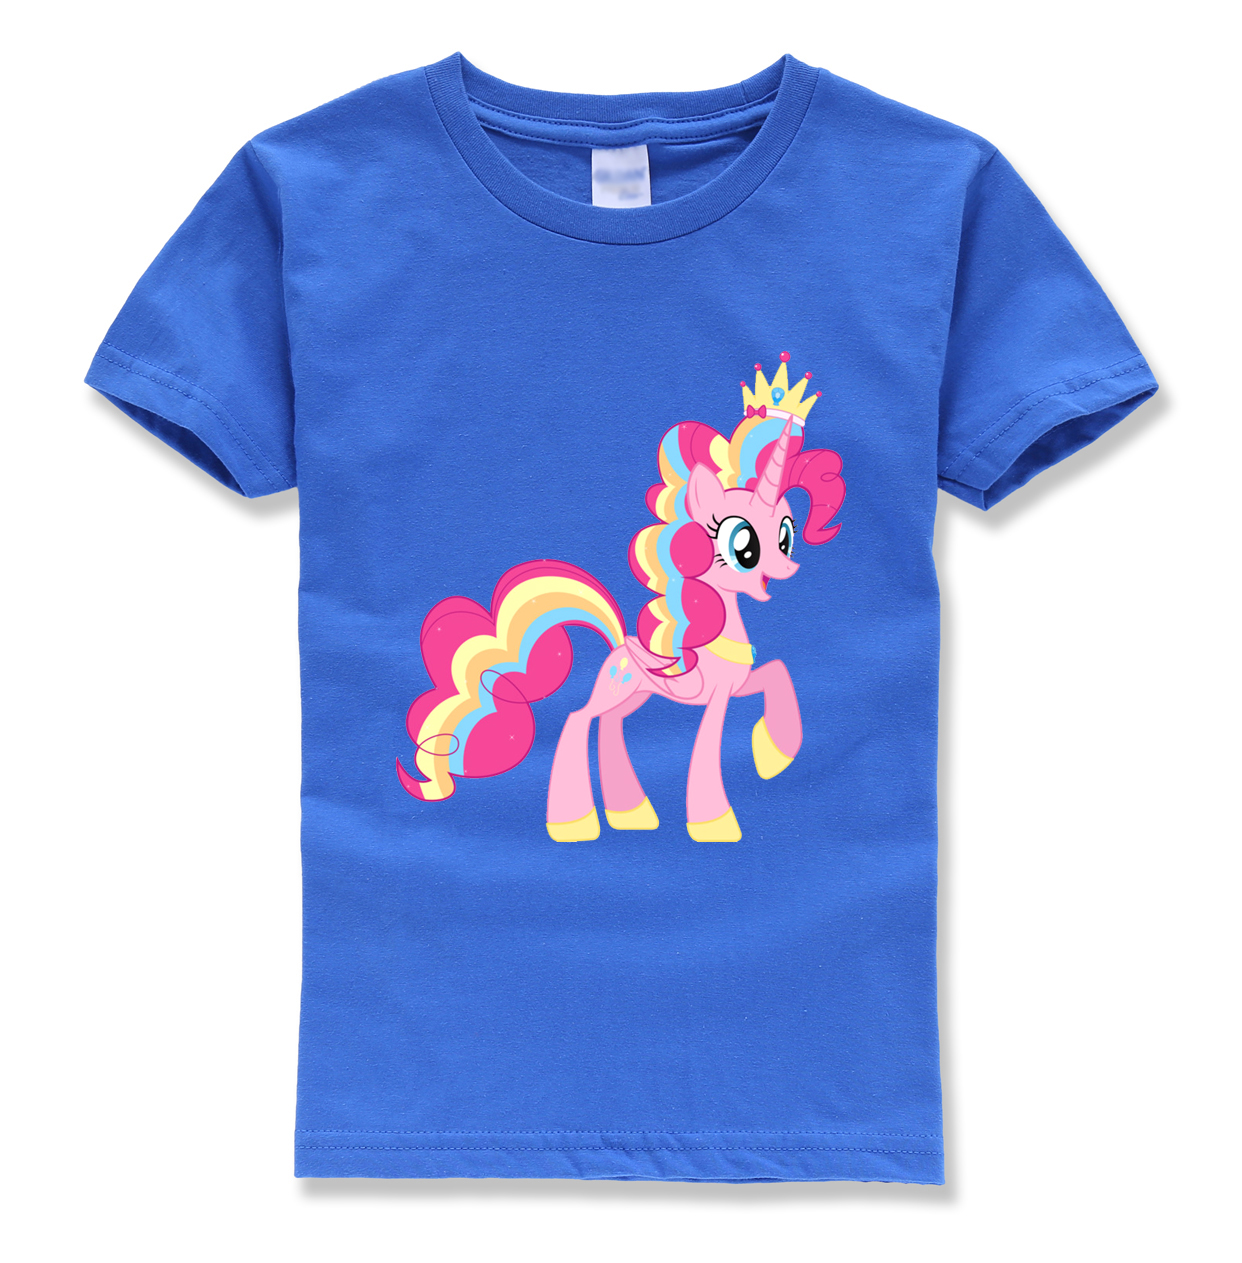 цена beautiful Crown unicorn tops brand homme stretewear t shirts kids short sleece harajuku casual o neck t-shirt children shirts